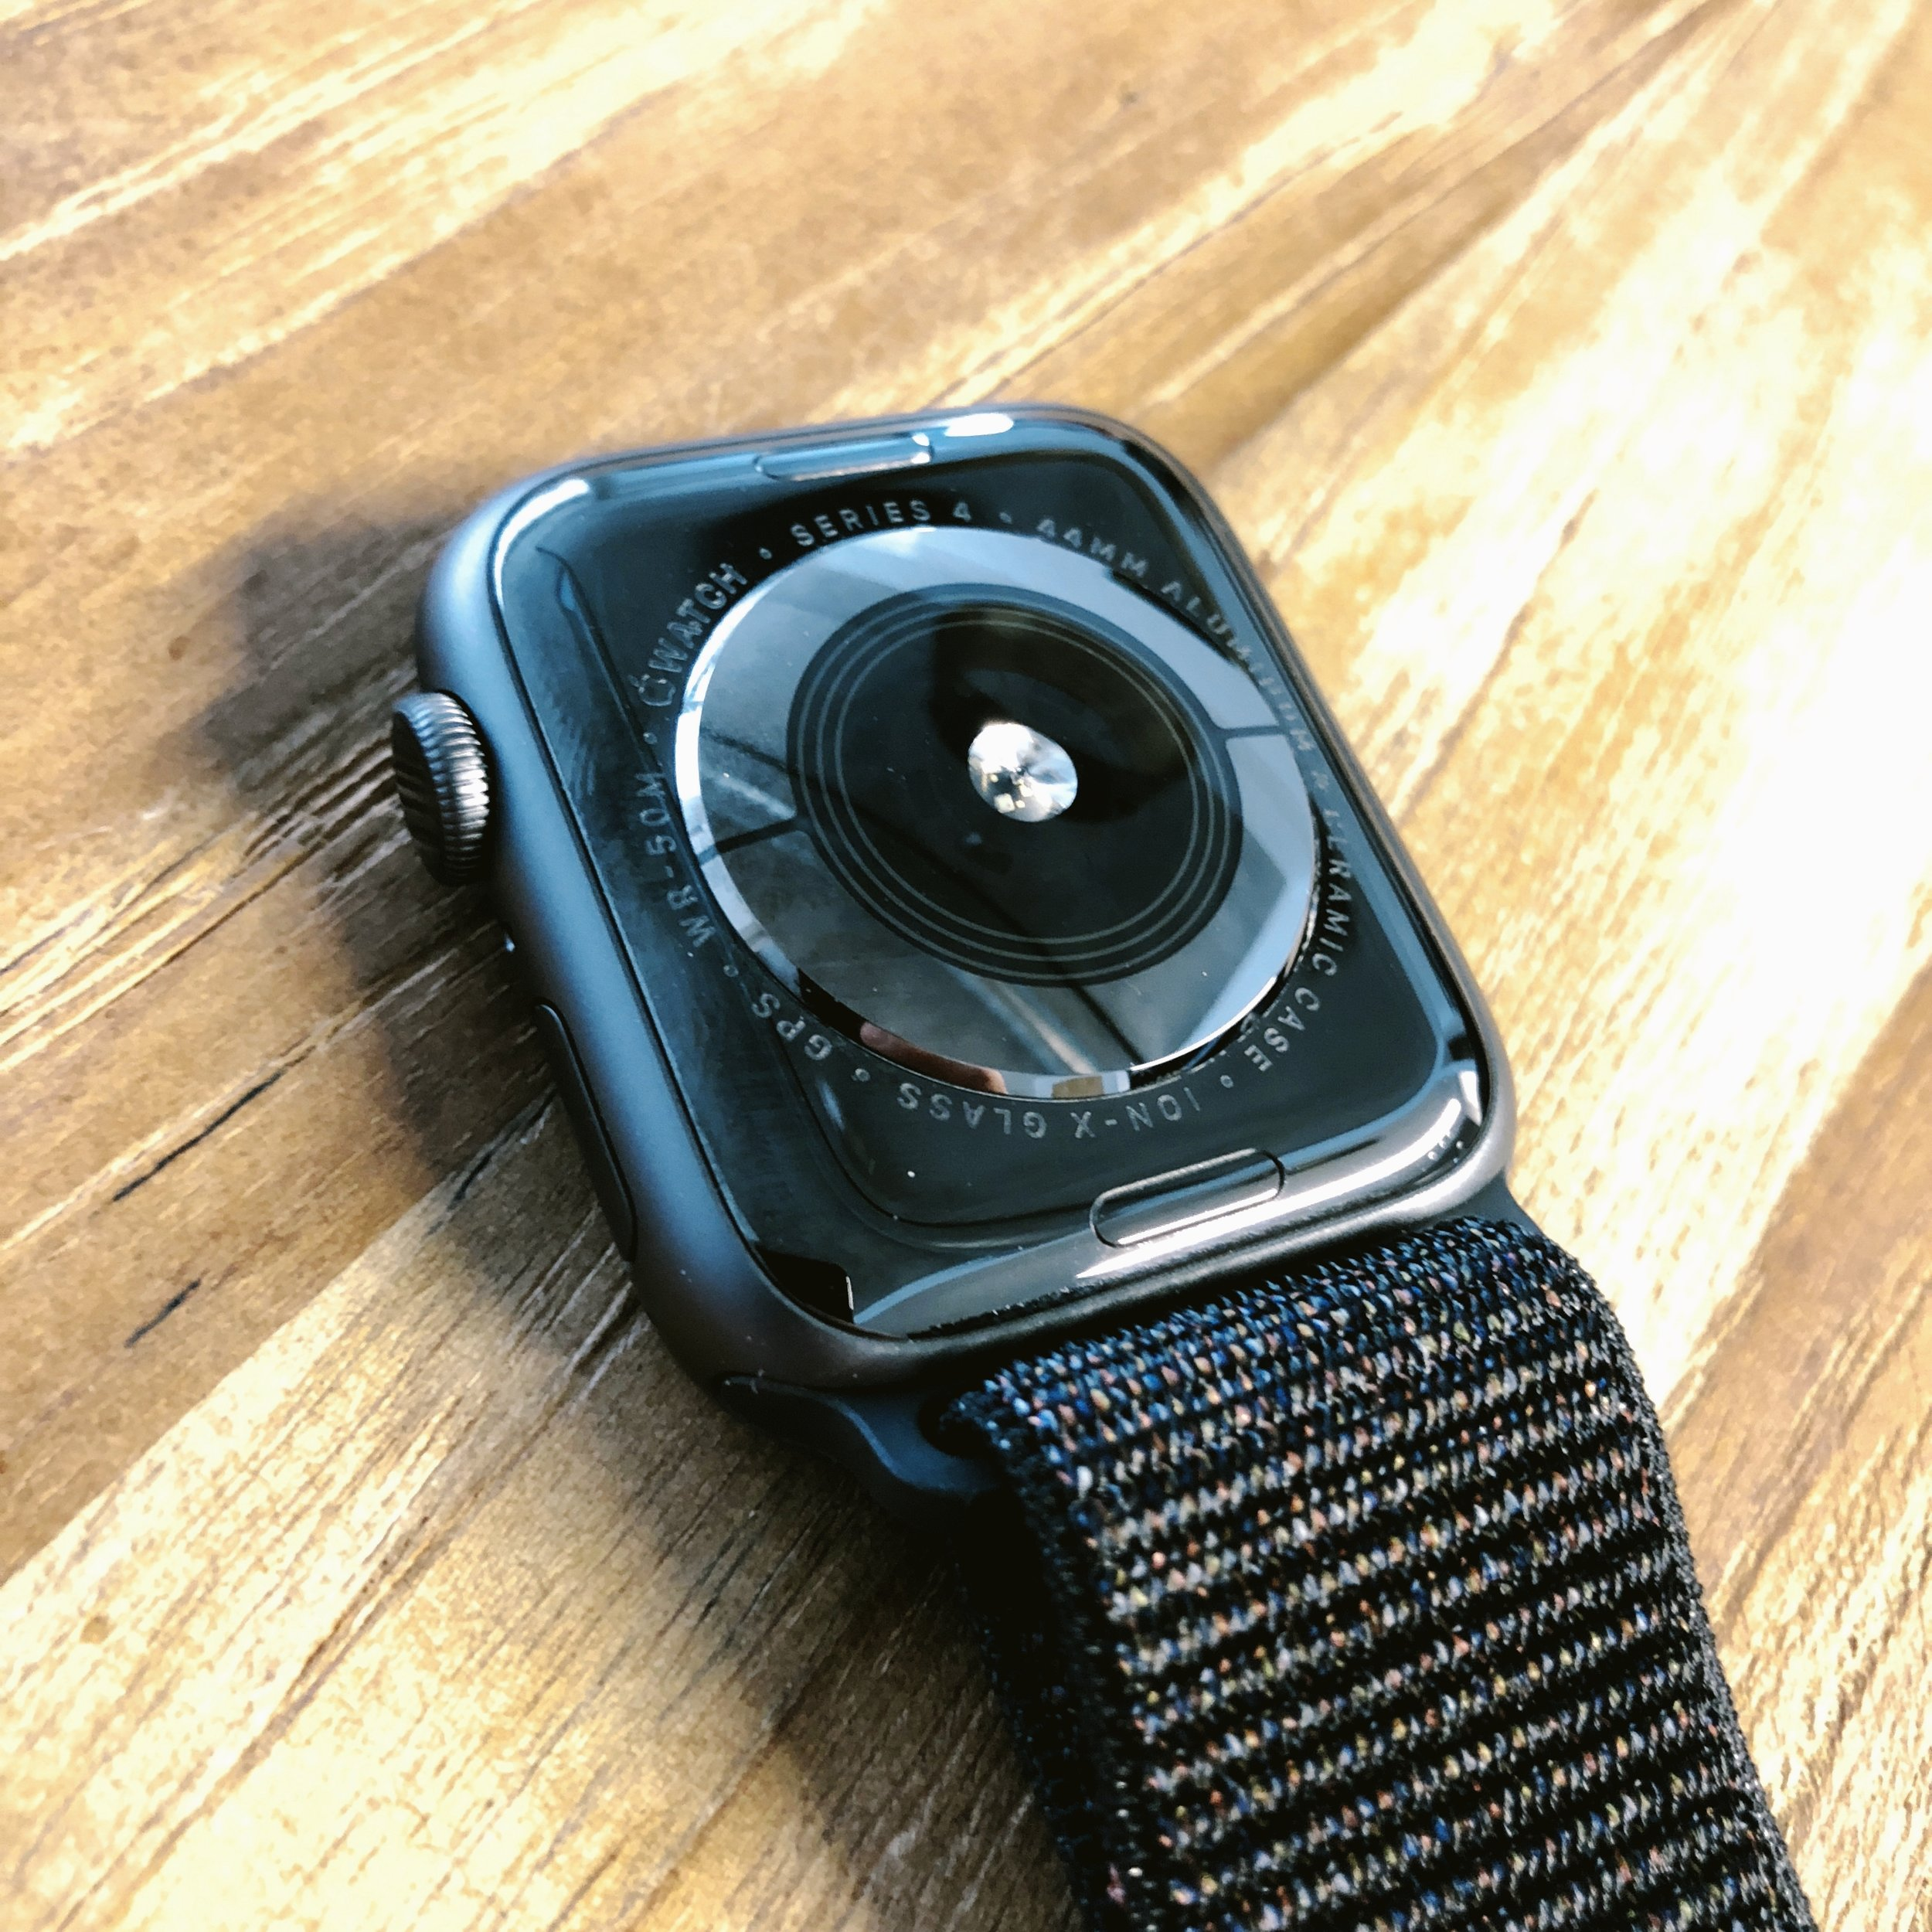 Apple_Watch_Series_4_2_2018.jpg